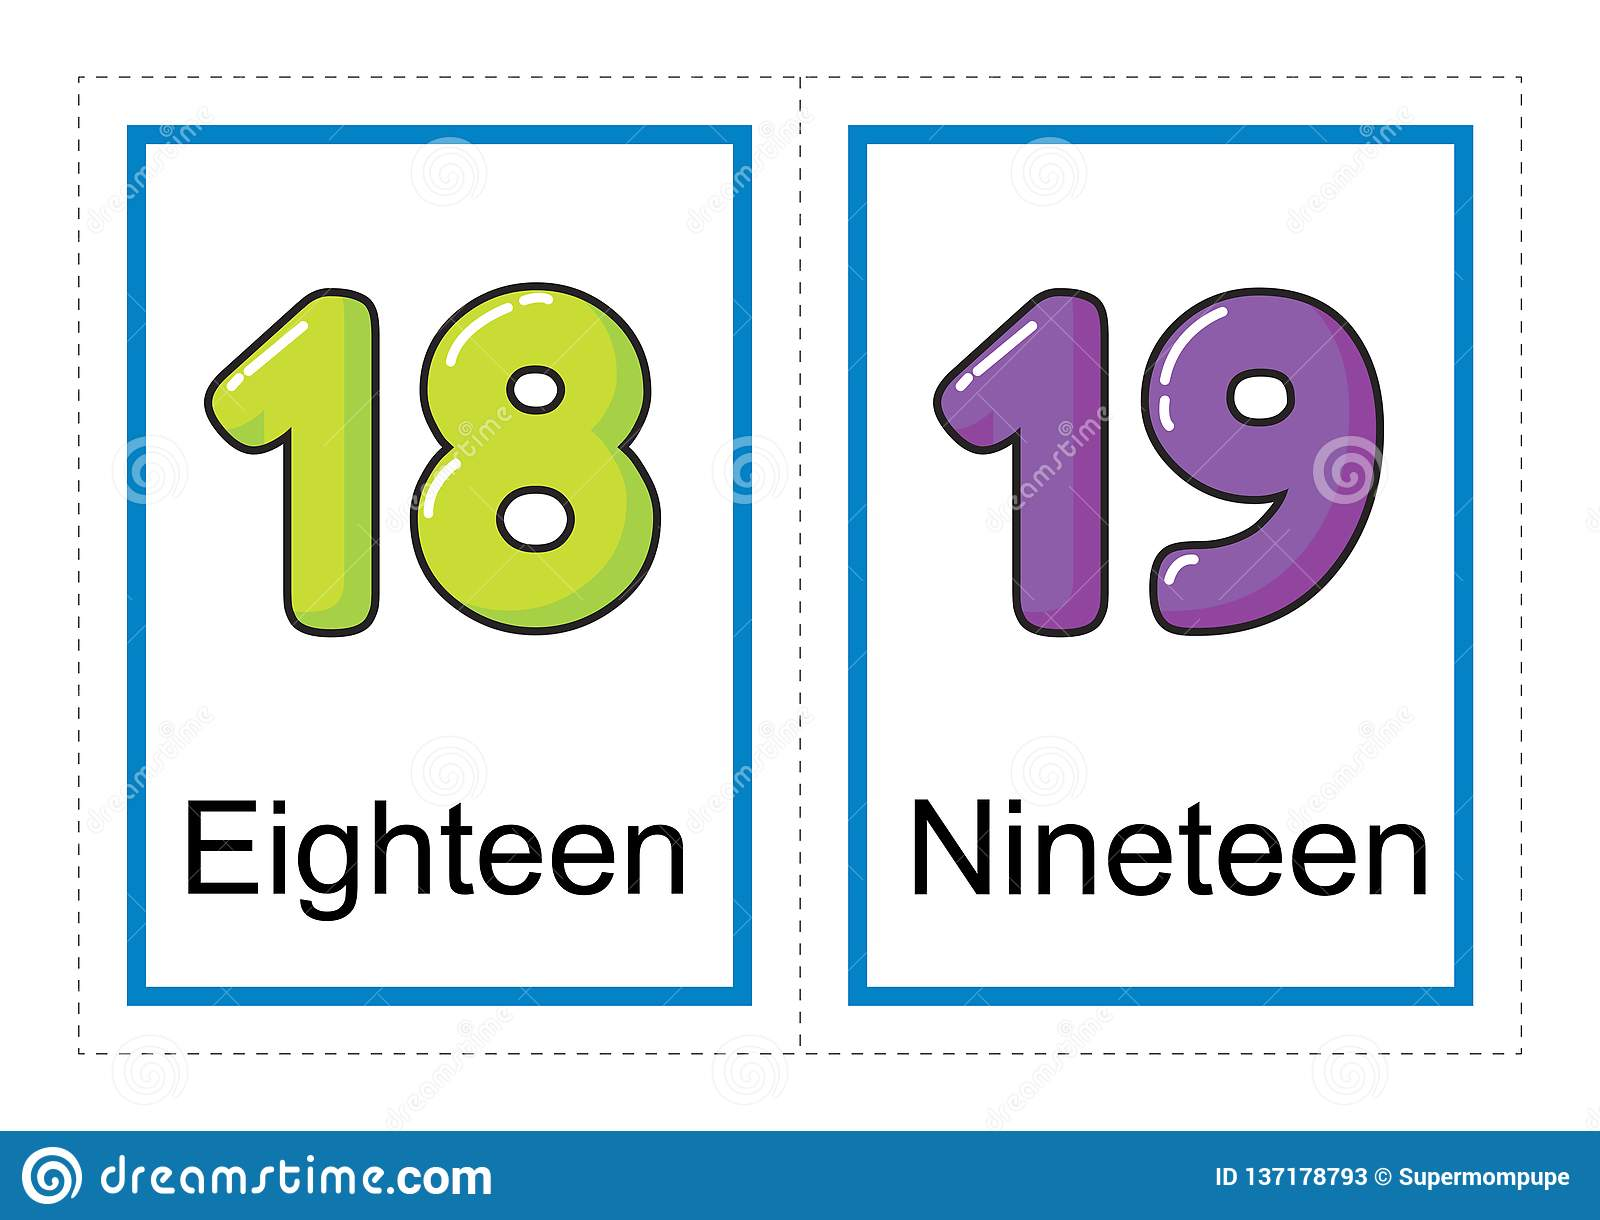 photo about Printable Numbers Flashcards identified as Flash Card Variety For Figures And Their Names For